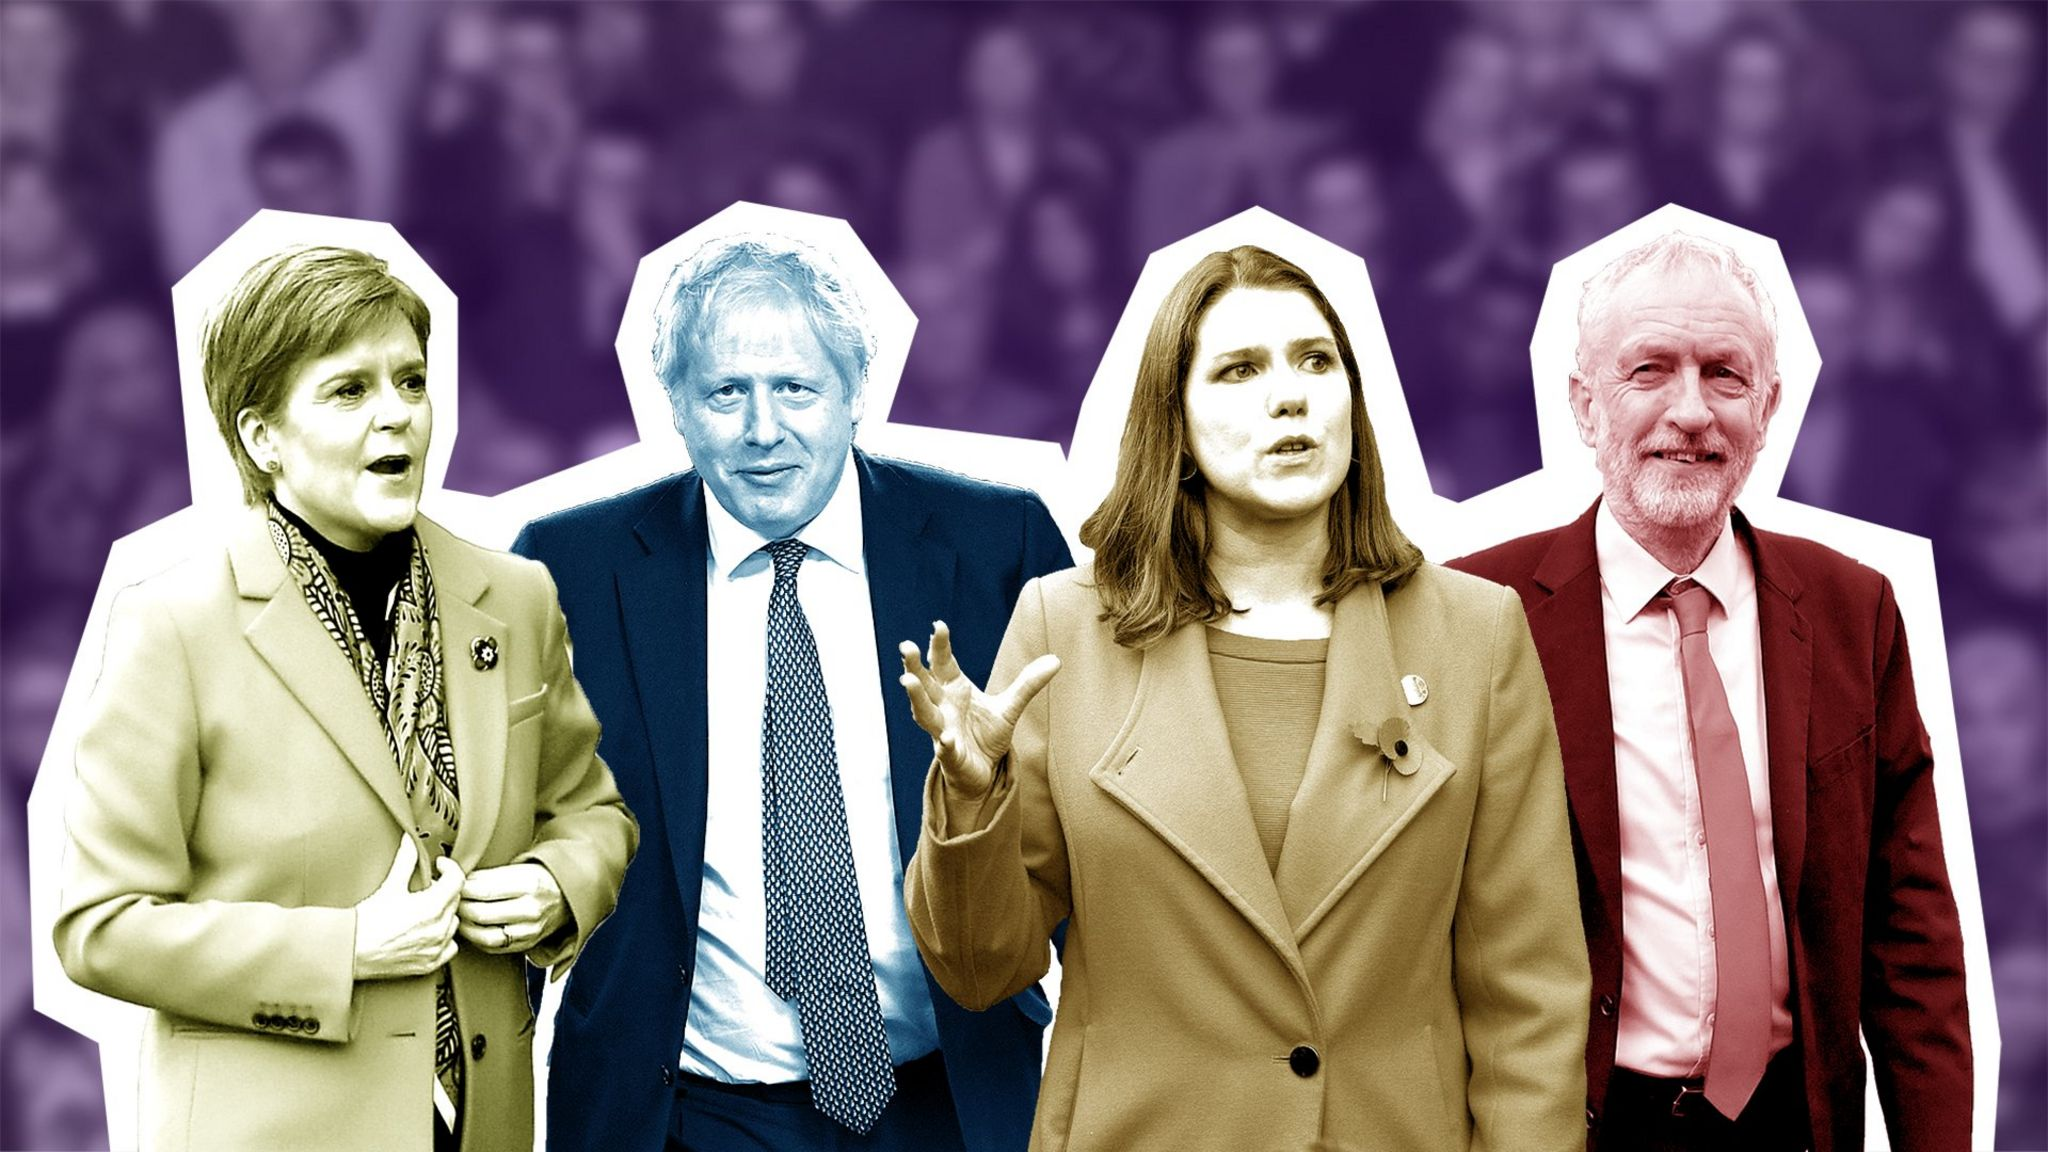 The four leaders taking part in the Question Time special